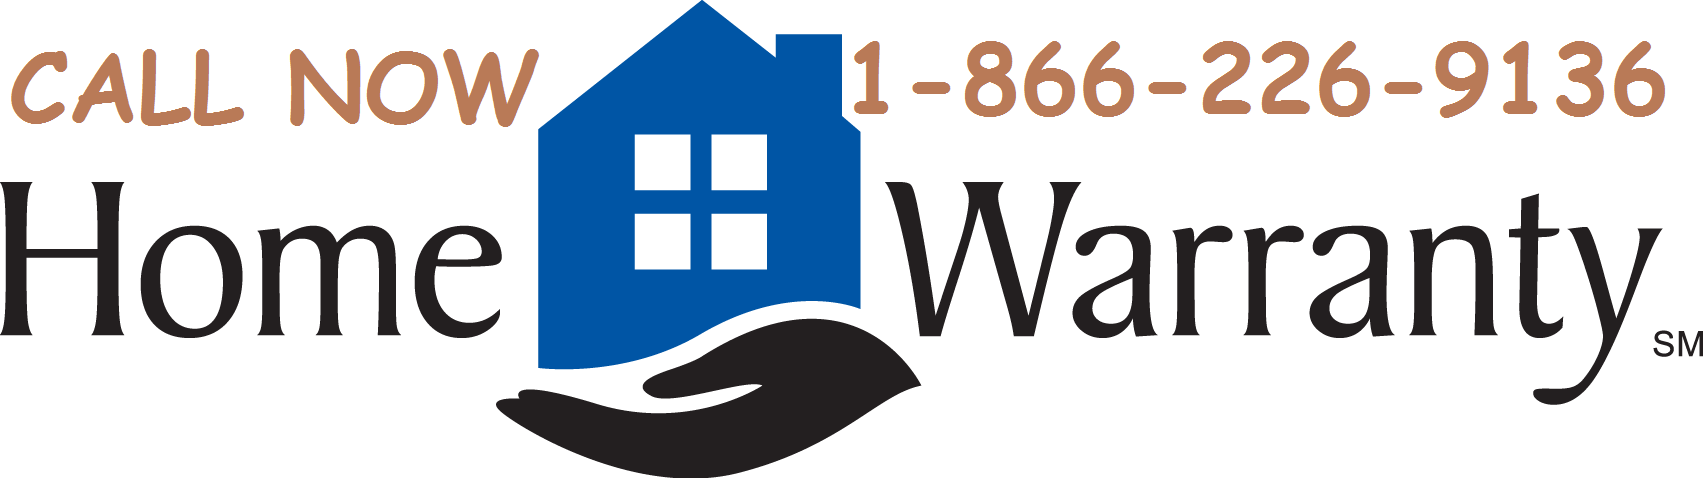 Save $$$ with the Best Home Warranty Plan - Call Now +1-866-226-9136